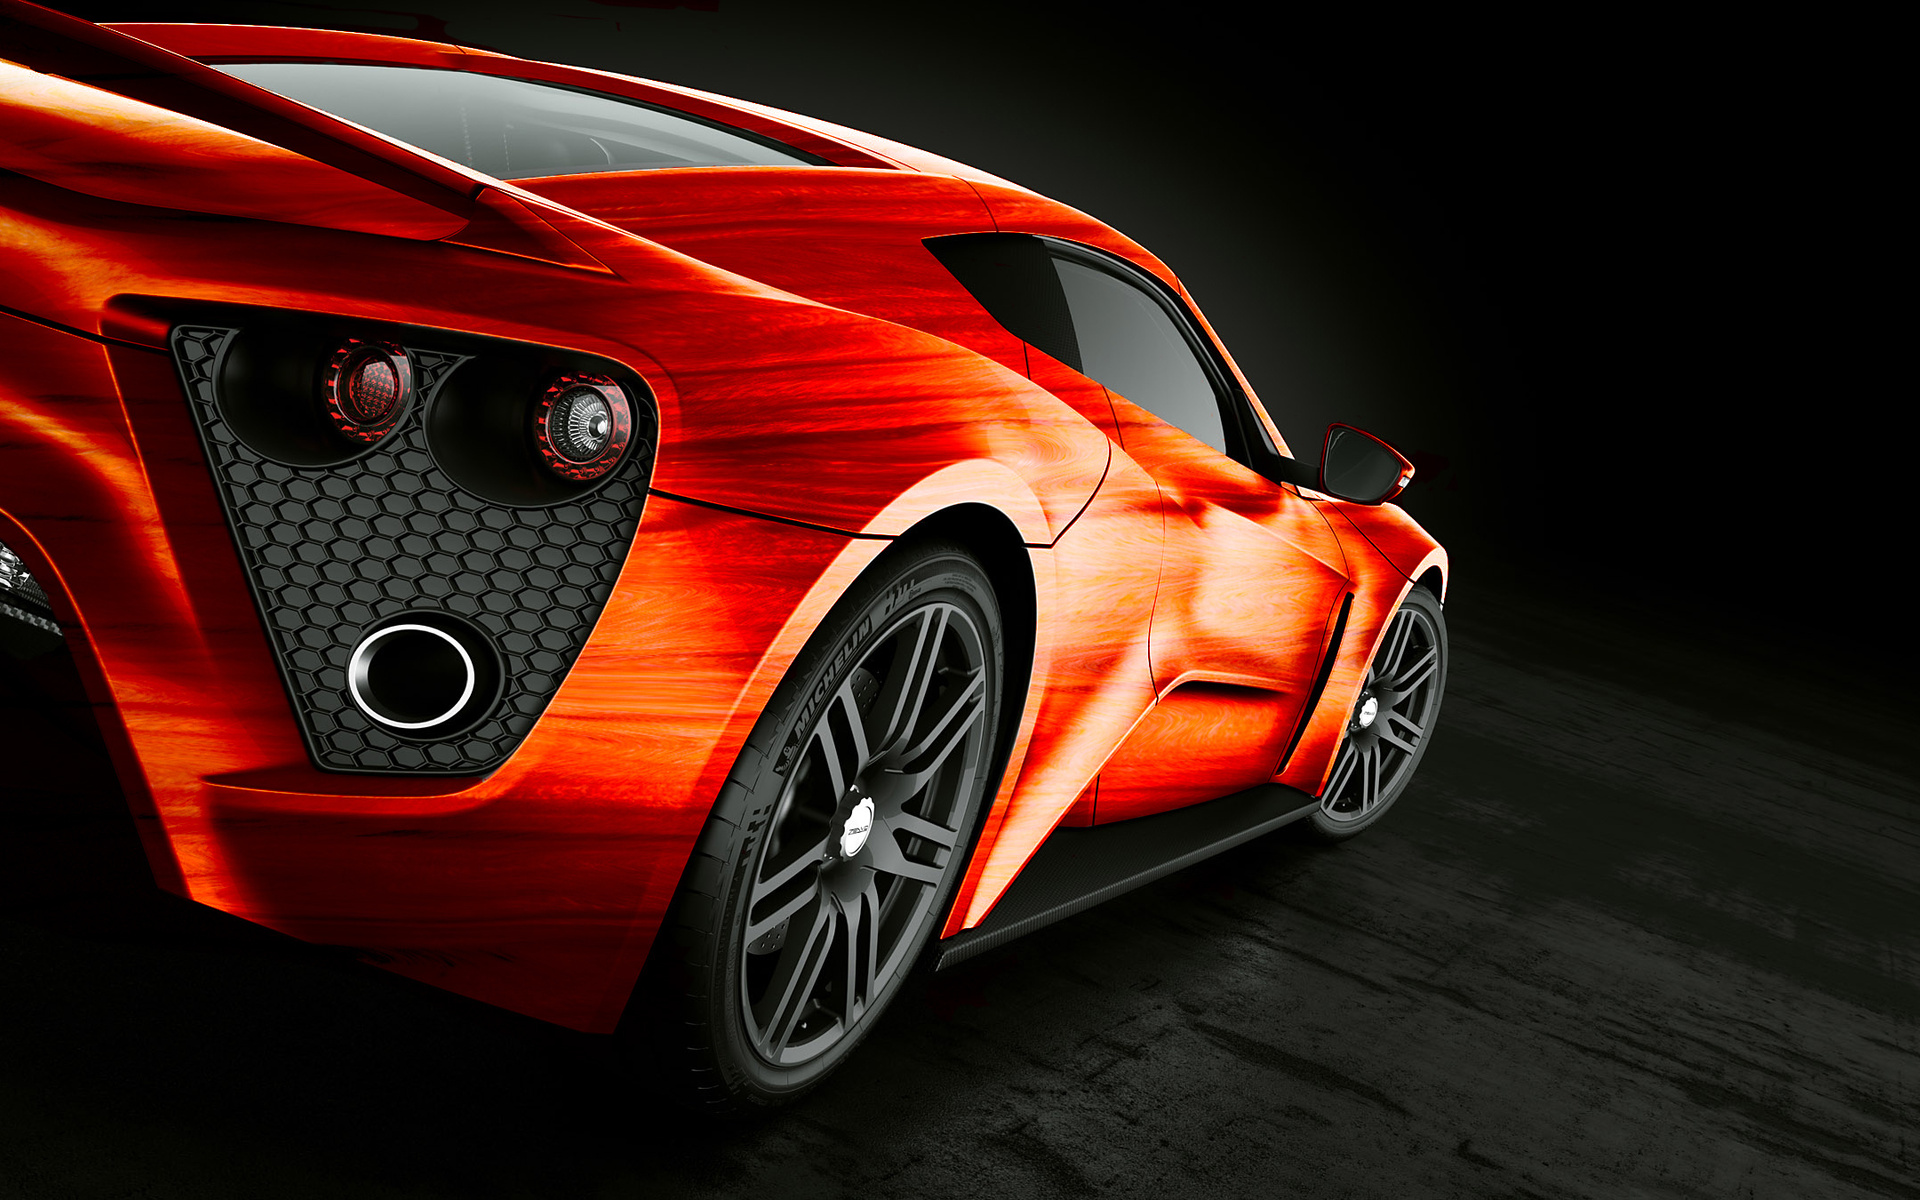 Cars Wallpaper 46878 1920x1080 Px HDWallSourcecom 185 HD Car Backgrounds Wallpapers Images Pictures 1600x900 Awesome